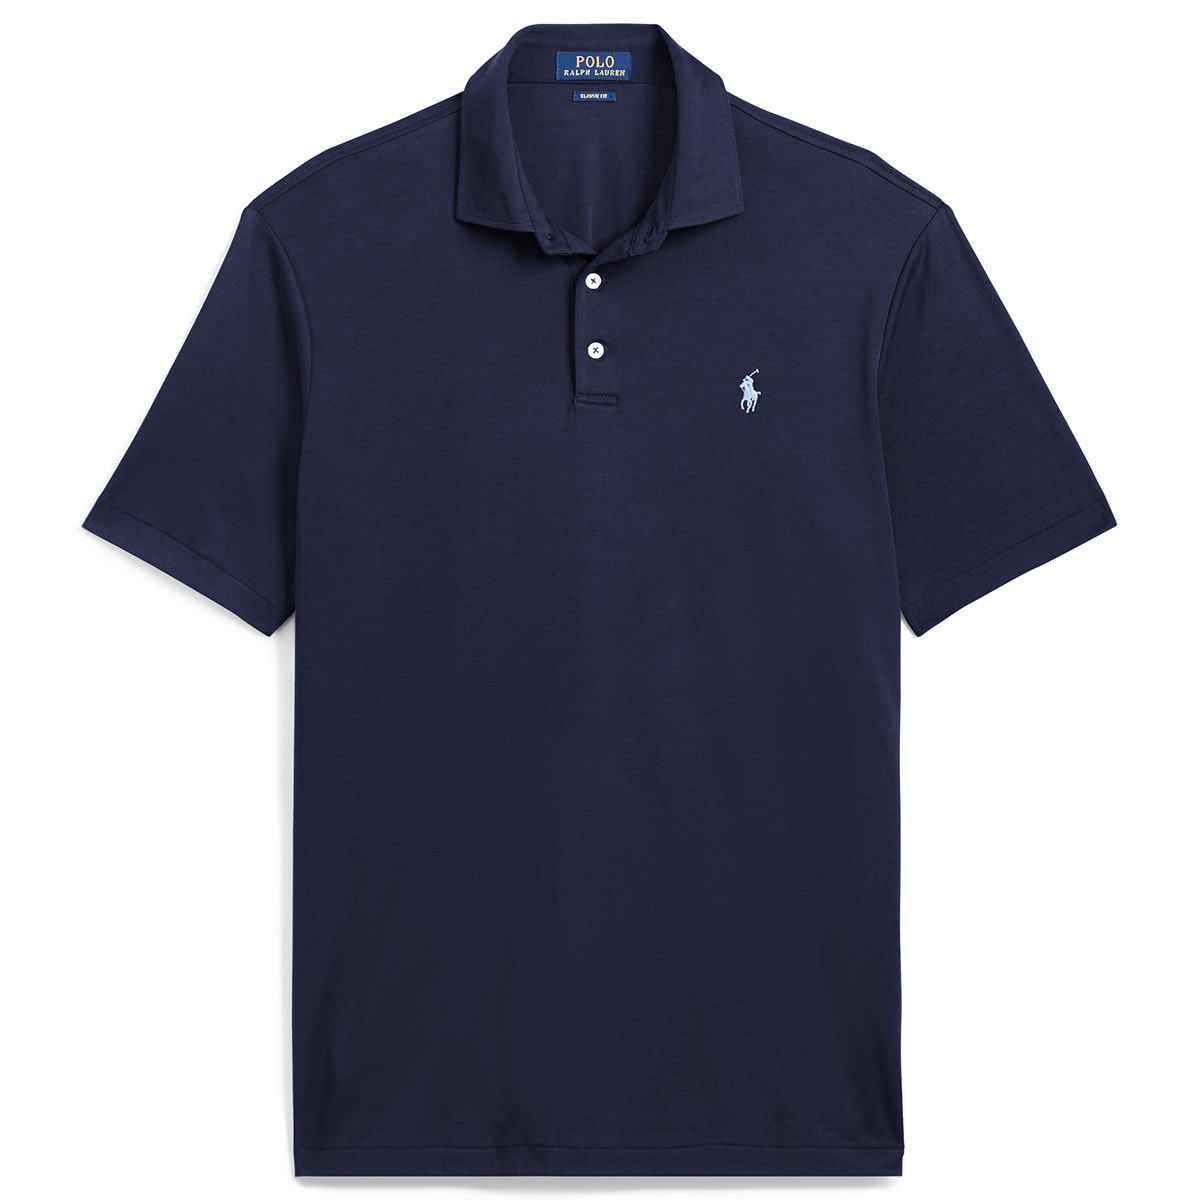 1f56ec6680 Polo Ralph Lauren - Men s Clothing and Shoes - Macy s